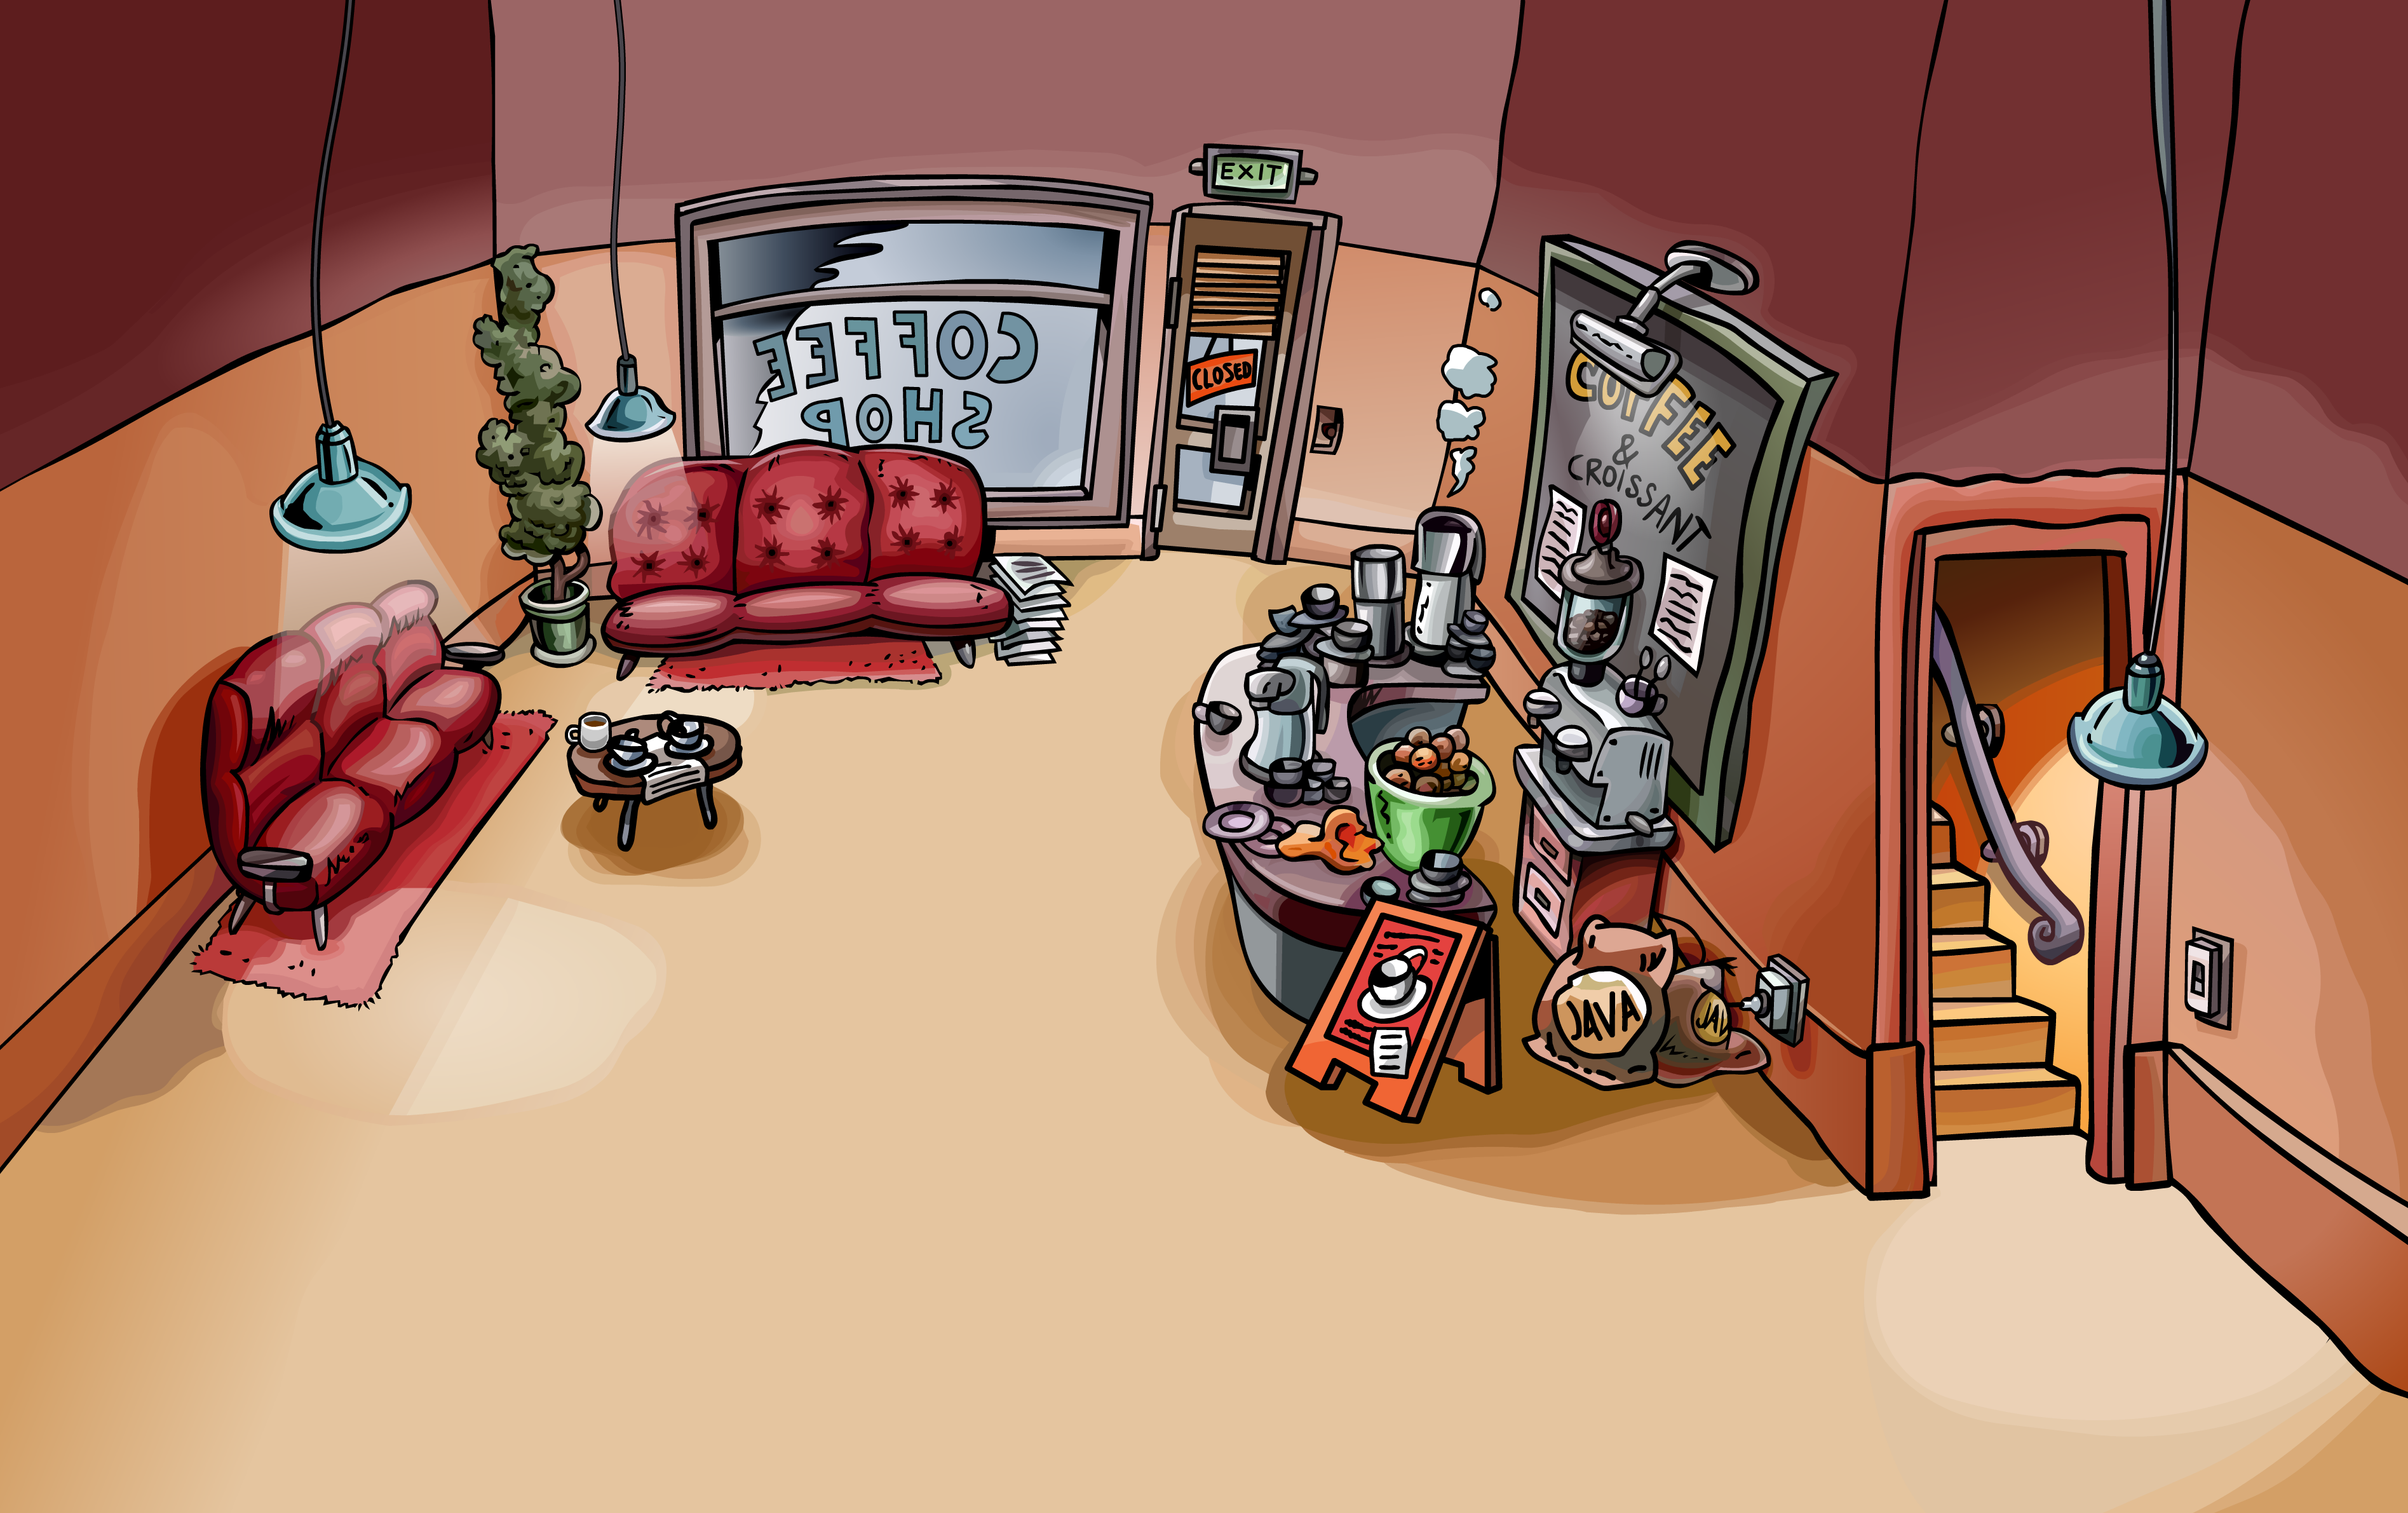 File:Sensei's Water Scavenger Hunt Coffee Shop.png